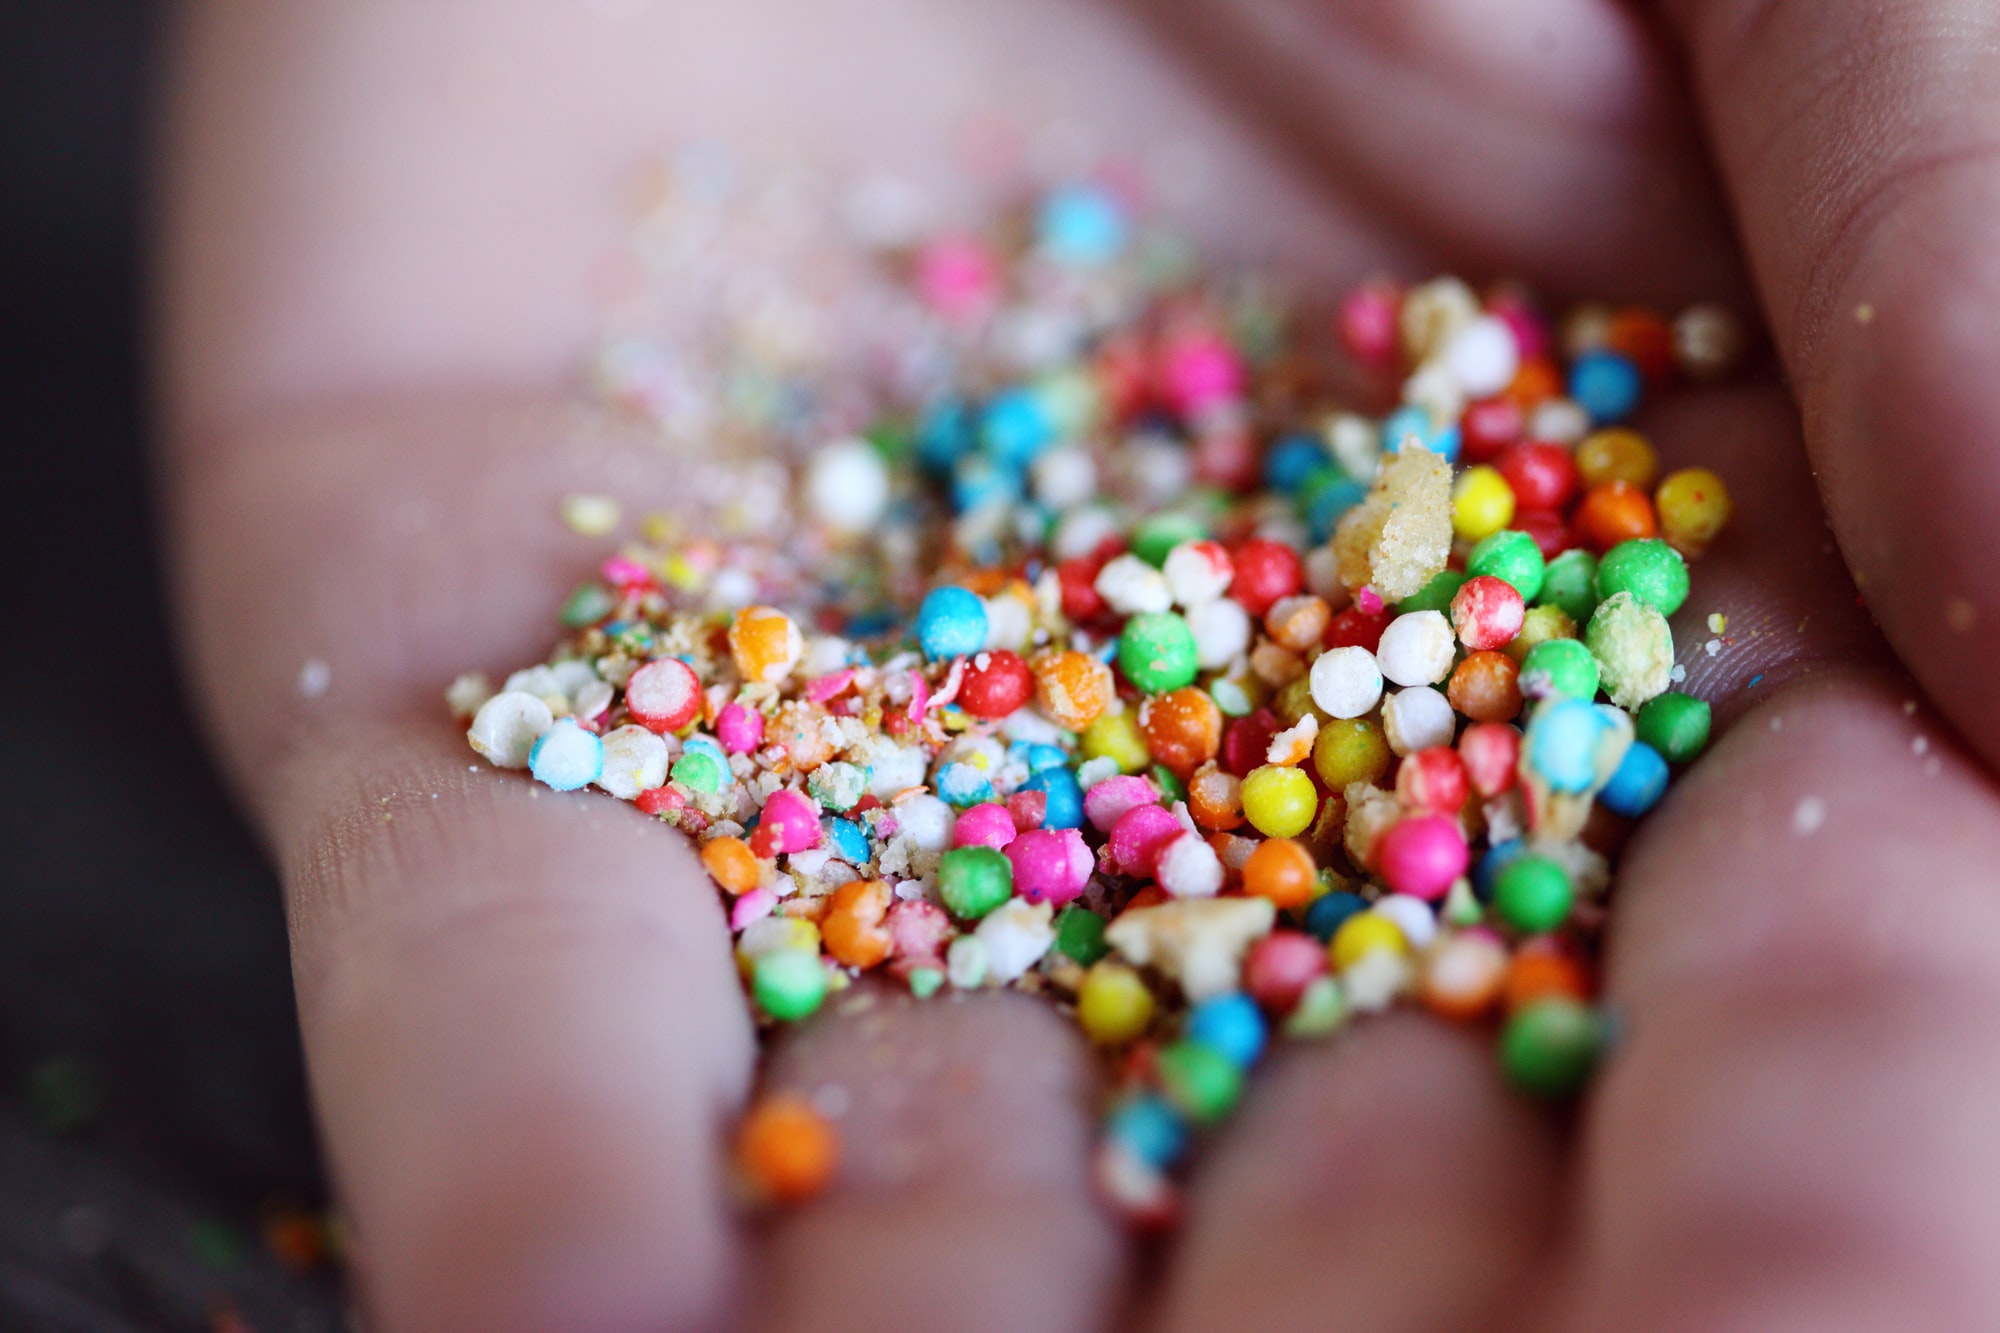 Handful of cookie crumbs and rainbow colored sugar candies.